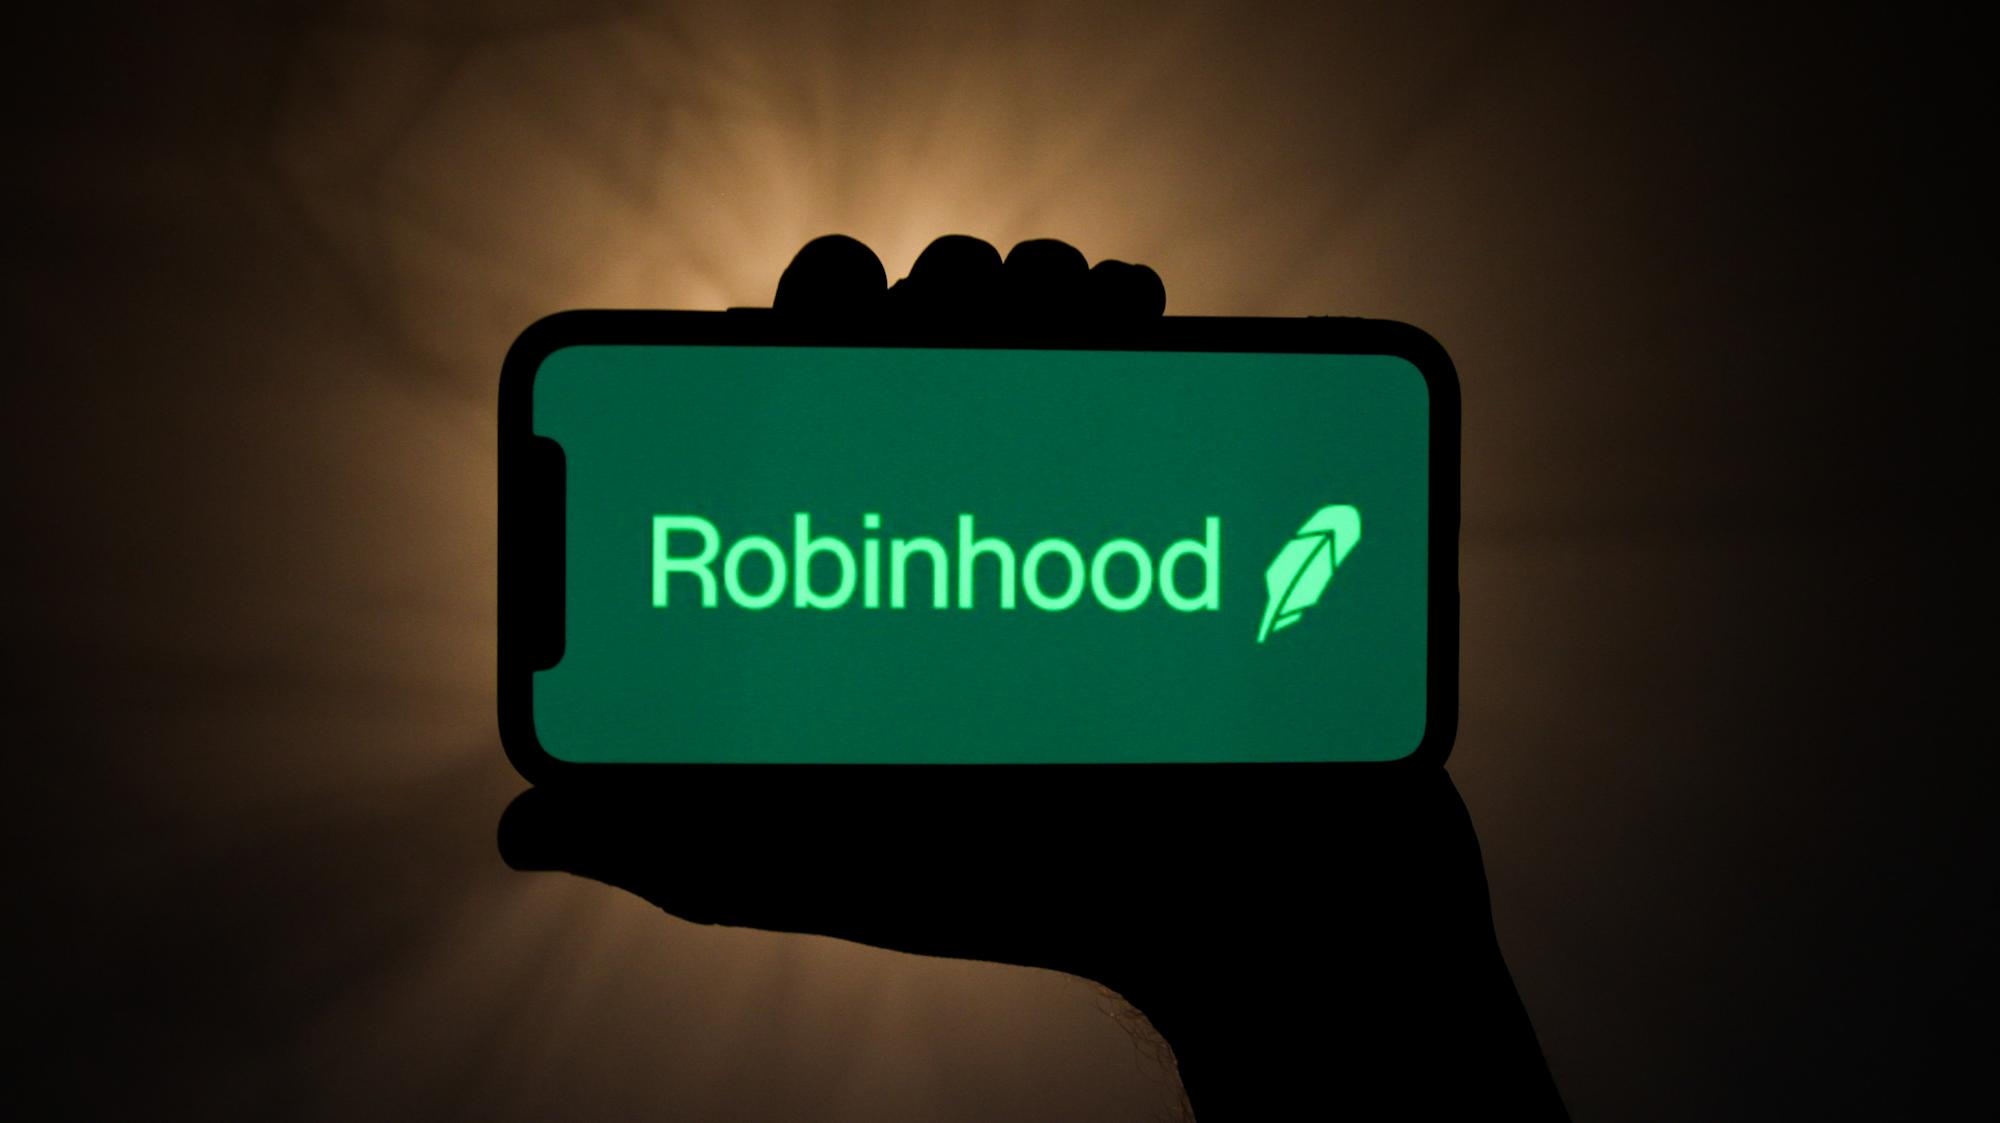 Robinhood has to pay $70M to settle FINRA charges